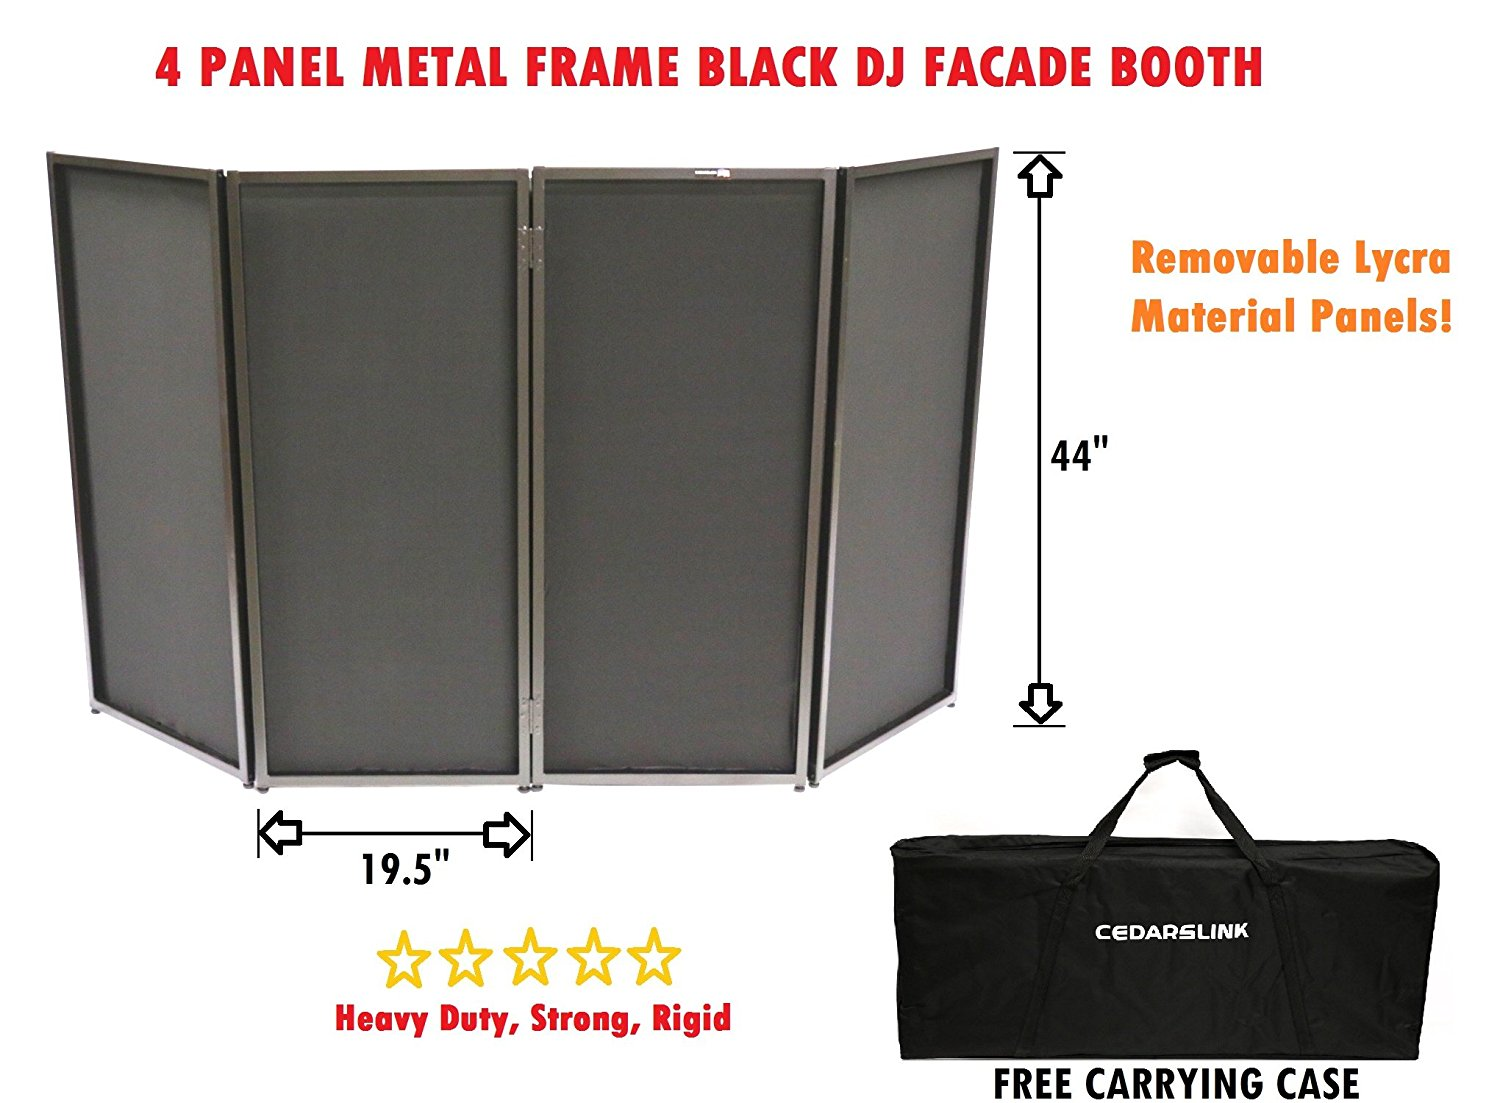 CedarsLink DJ Event Facade Black Scrim Metal Frame Booth + Travel Bag Case 14LB by